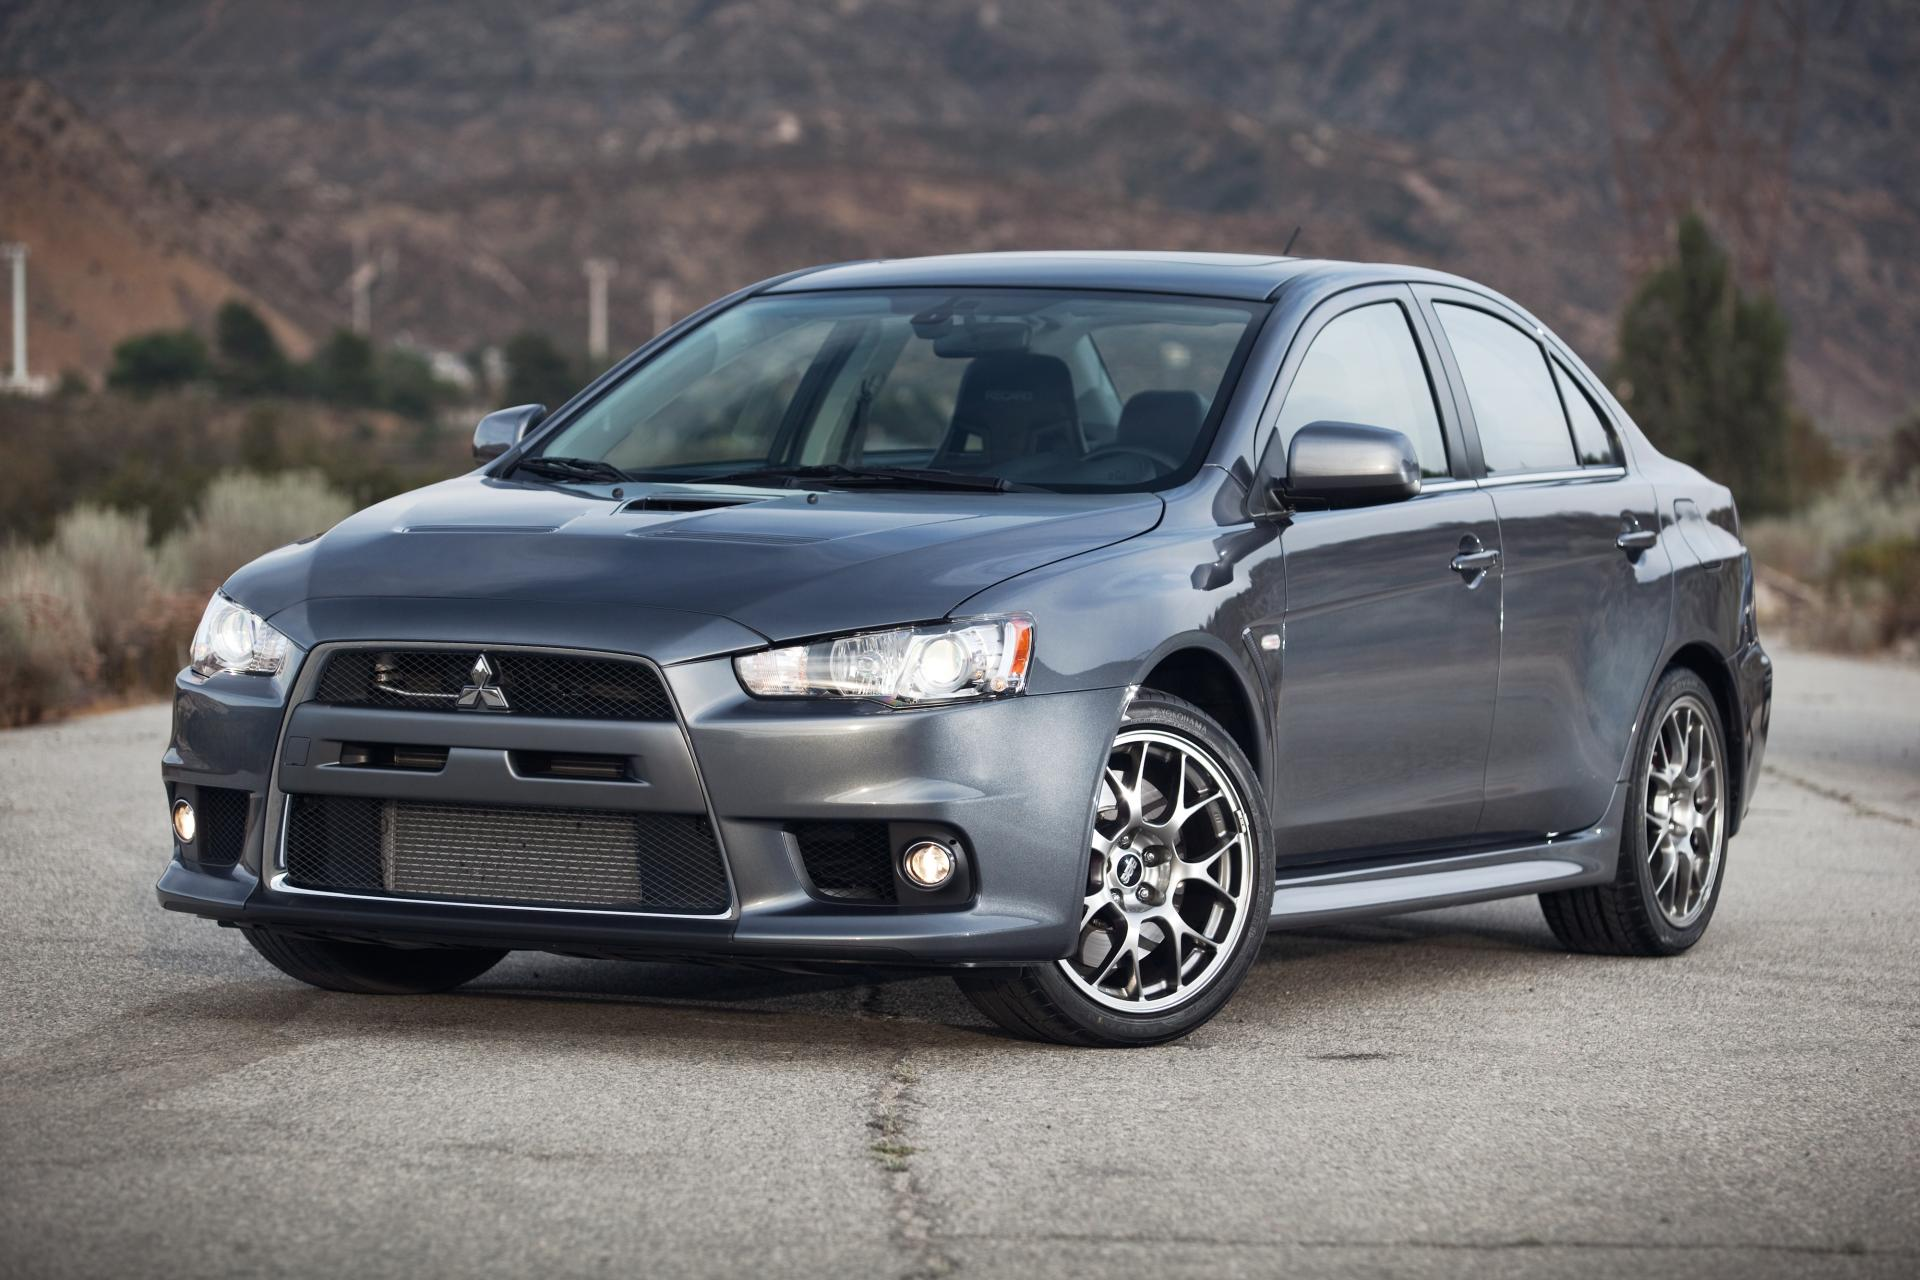 2014 Mitsubishi Lancer Evolution News and Information